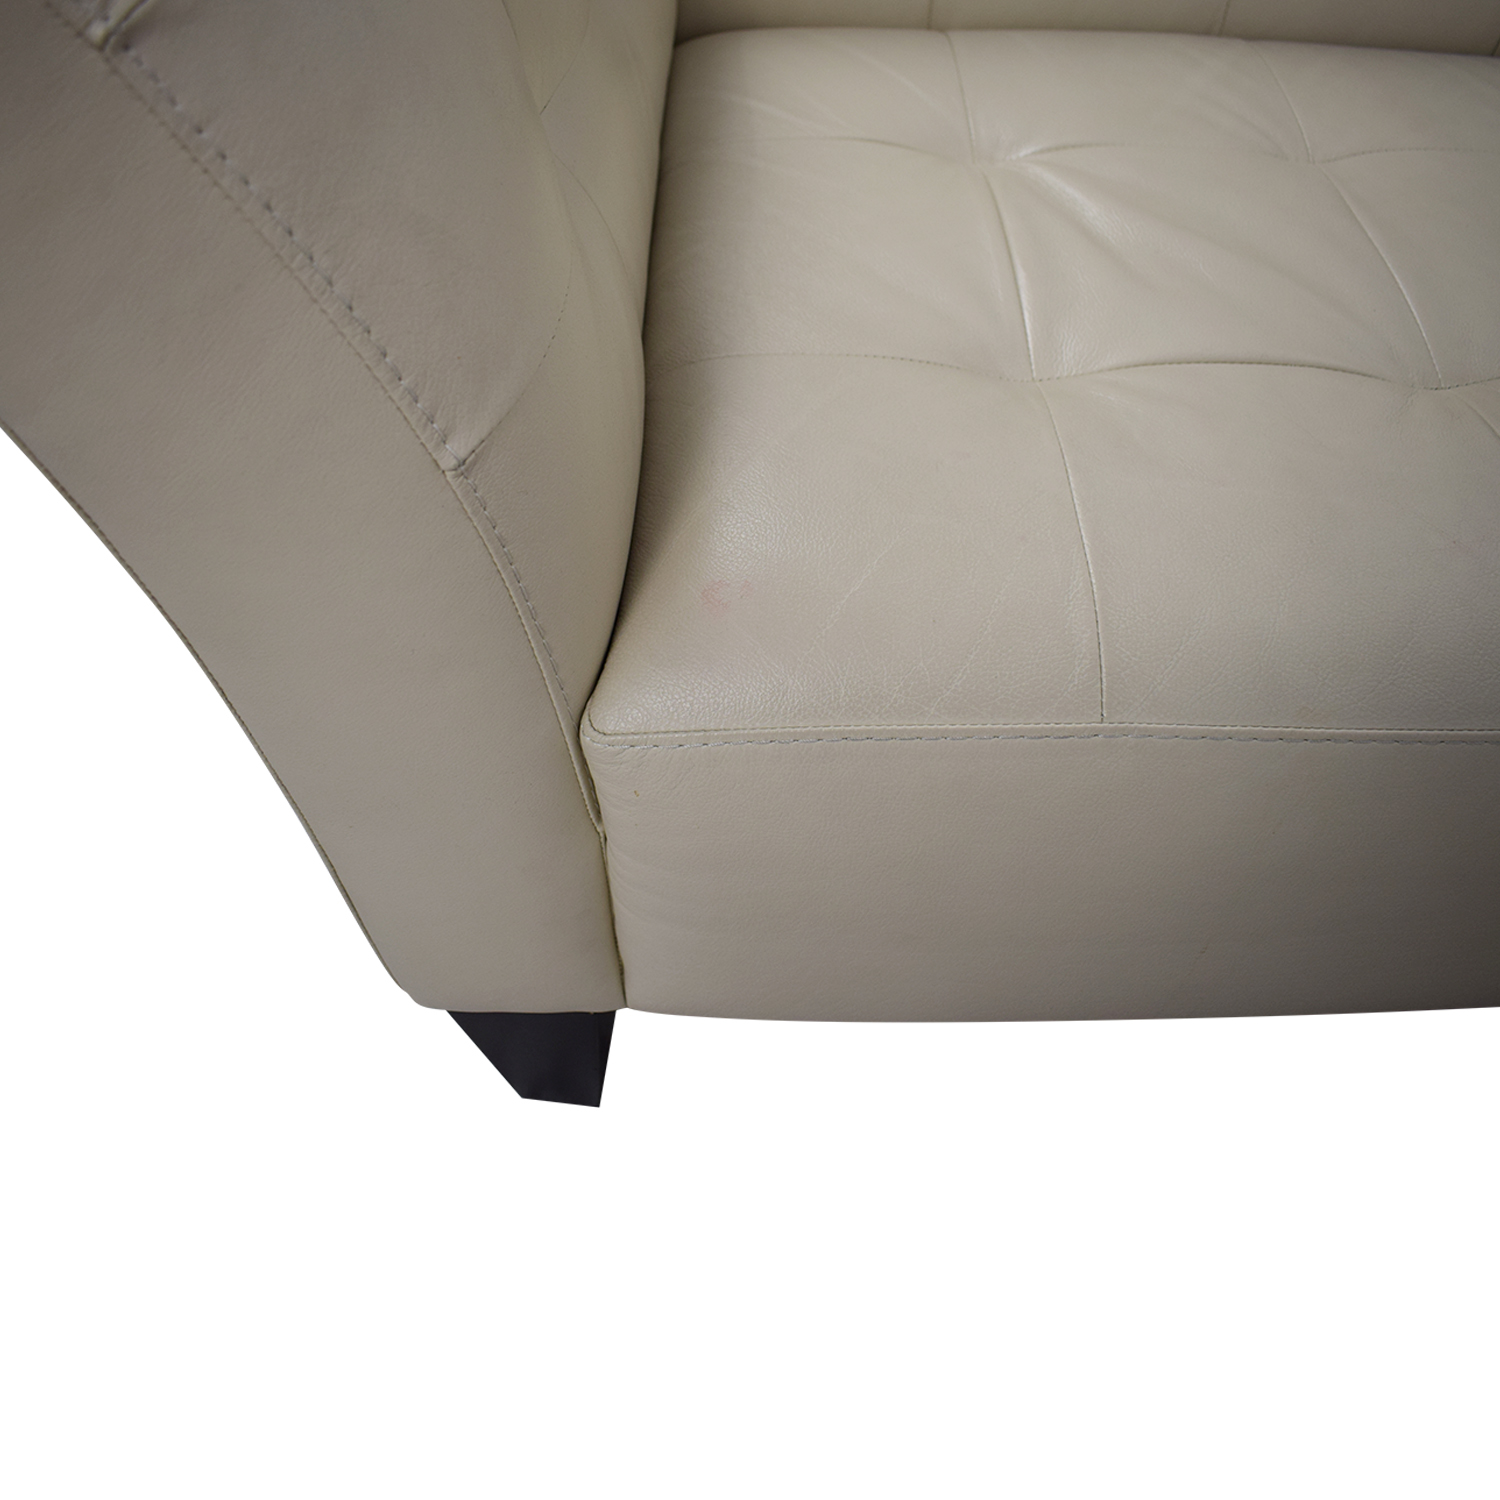 Chateau d'Ax Chateau d'Ax White Faux Leather Sectional Sofa for sale